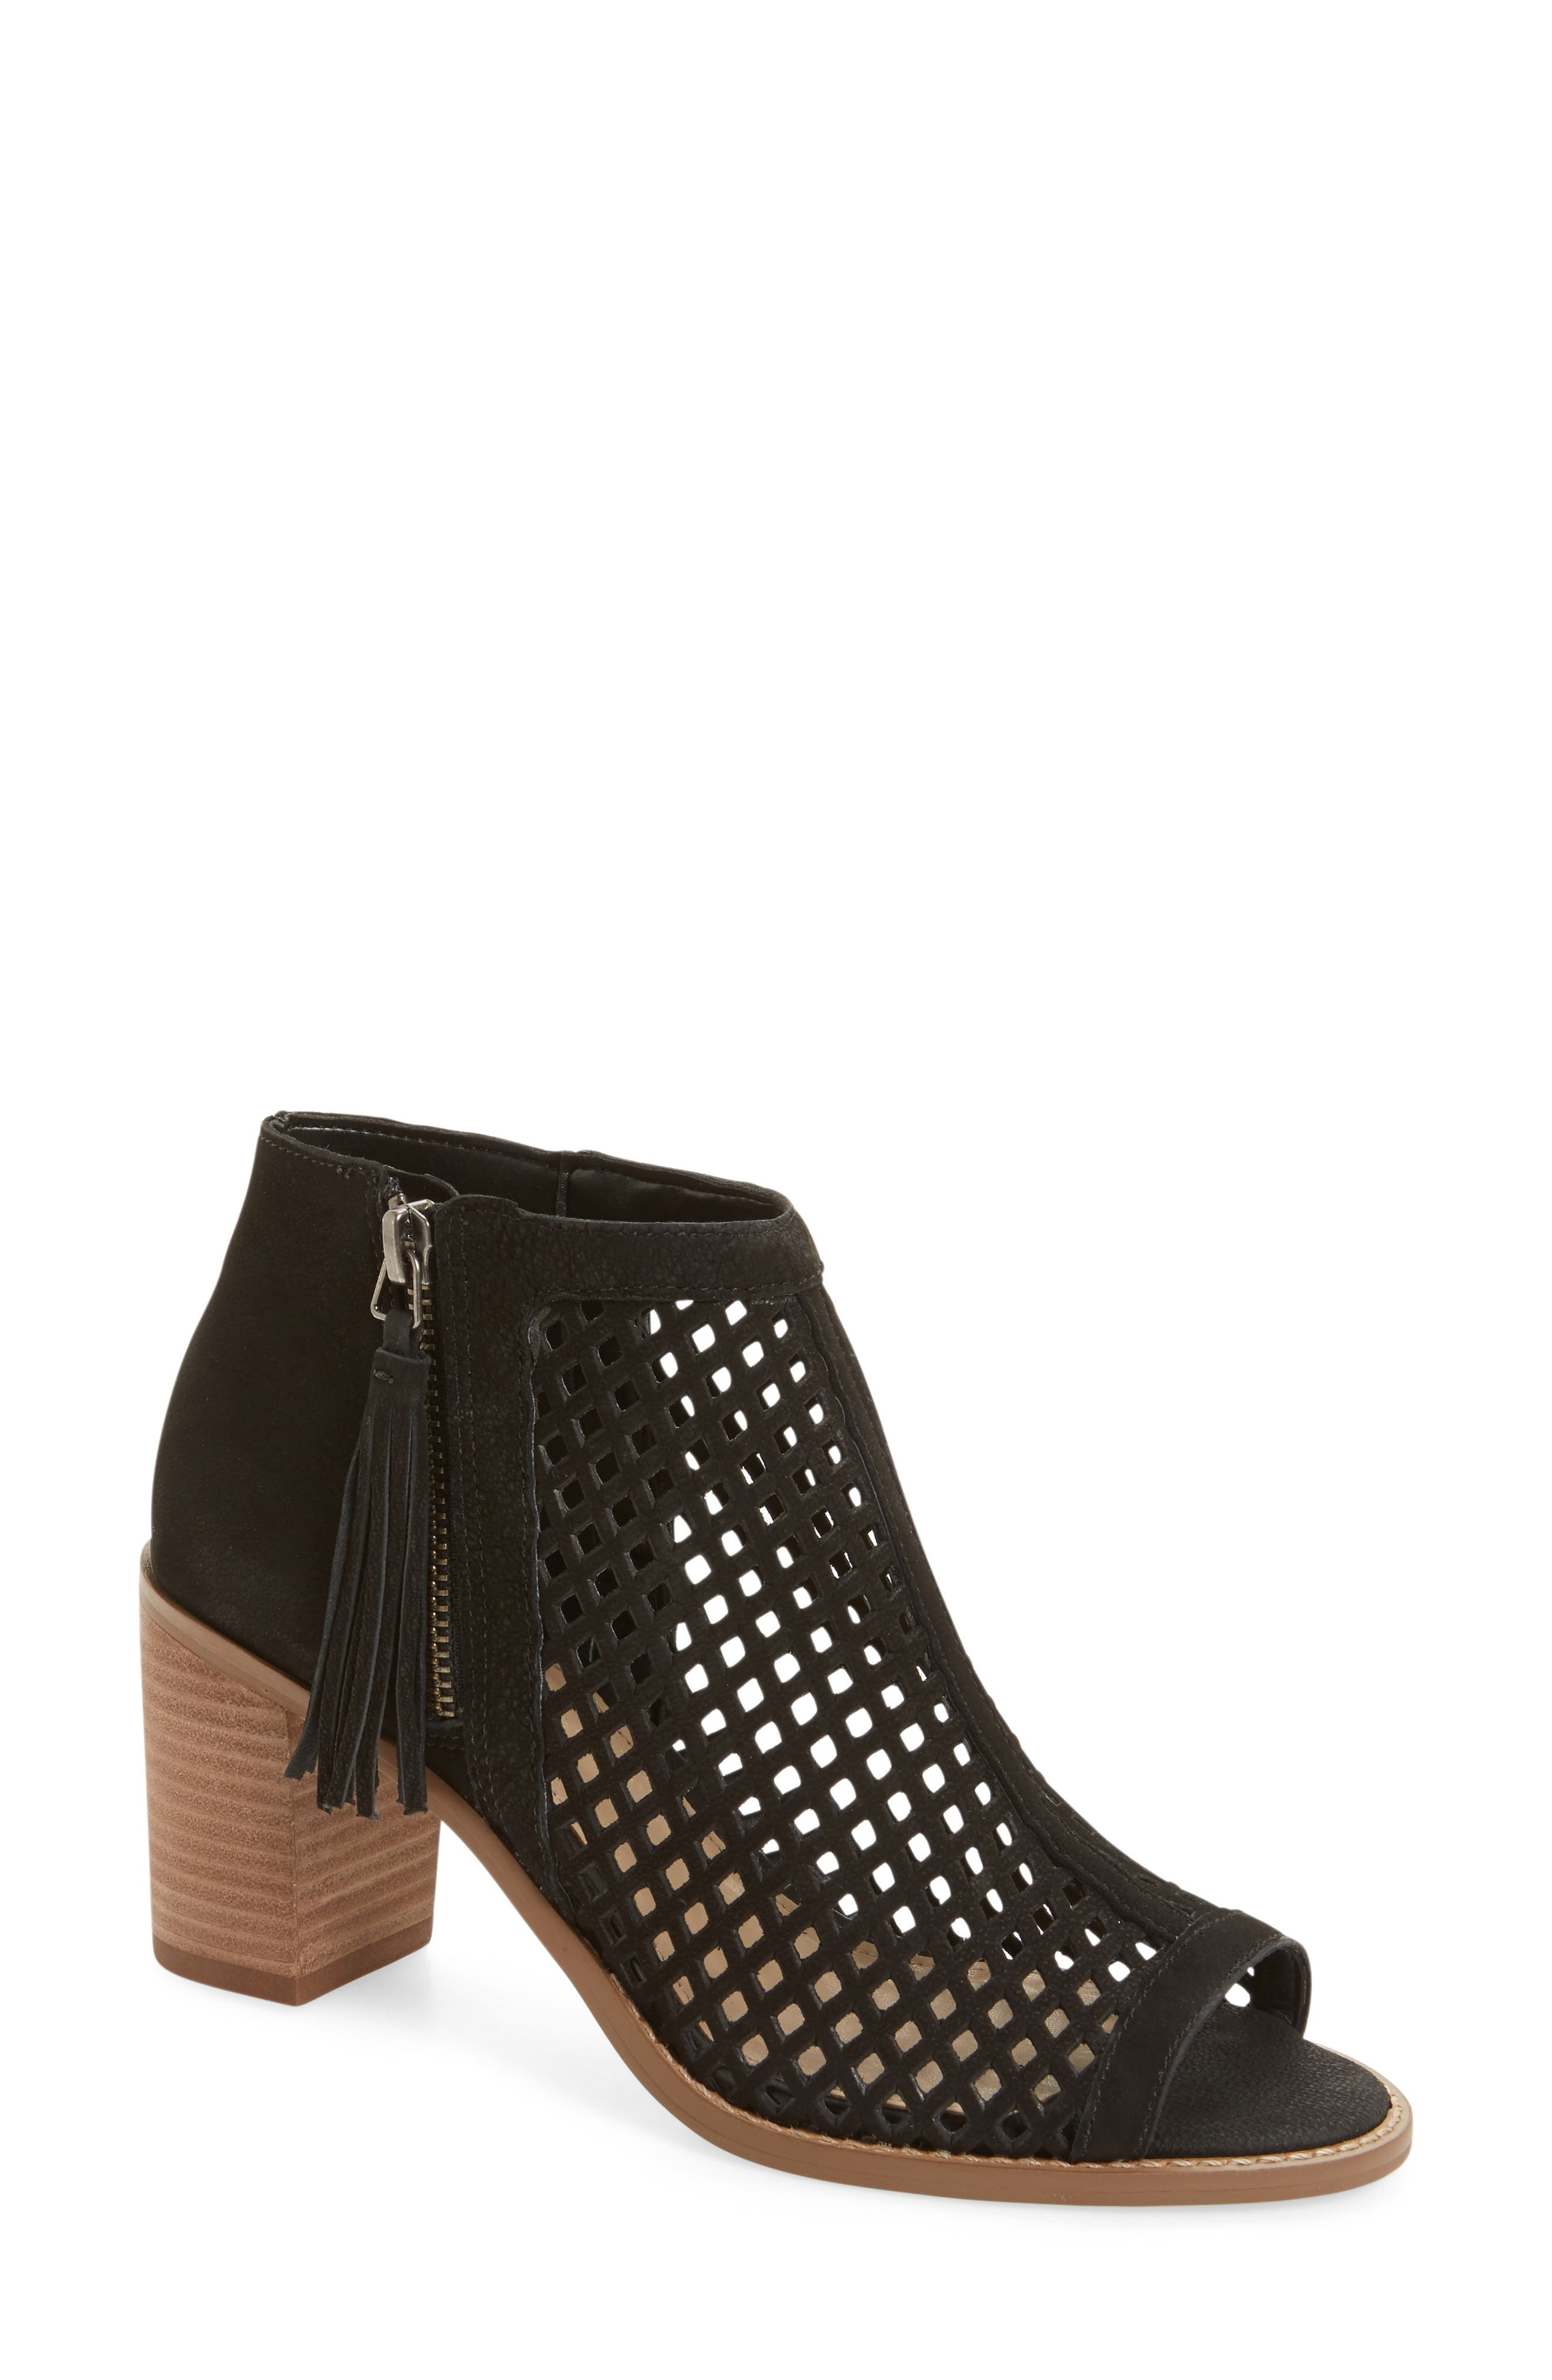 Alternate Image 1 Selected - Vince Camuto Tresin Perforated Open-Toe Bootie (Women)